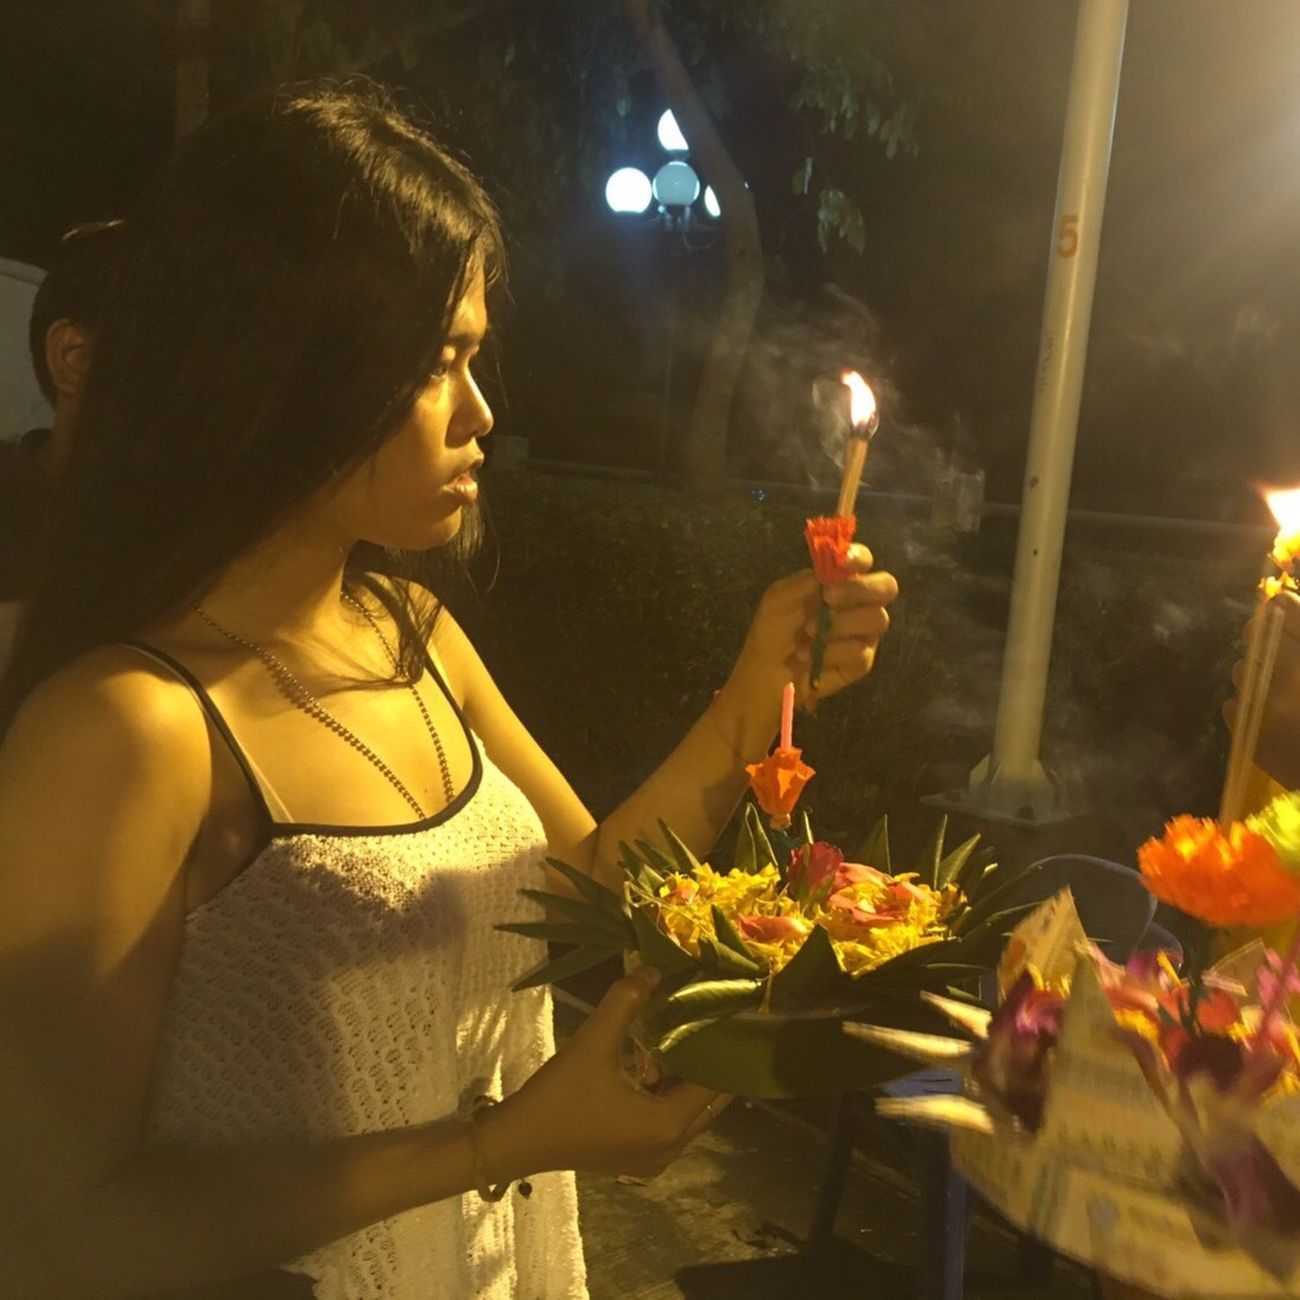 I wish for Loykrathong Festival Krathong Loykratong Fullmoon Thaifestival Thaiculture Beautiful Day Alotofpeople Fun Mlife Lifestyles Enjoying Life